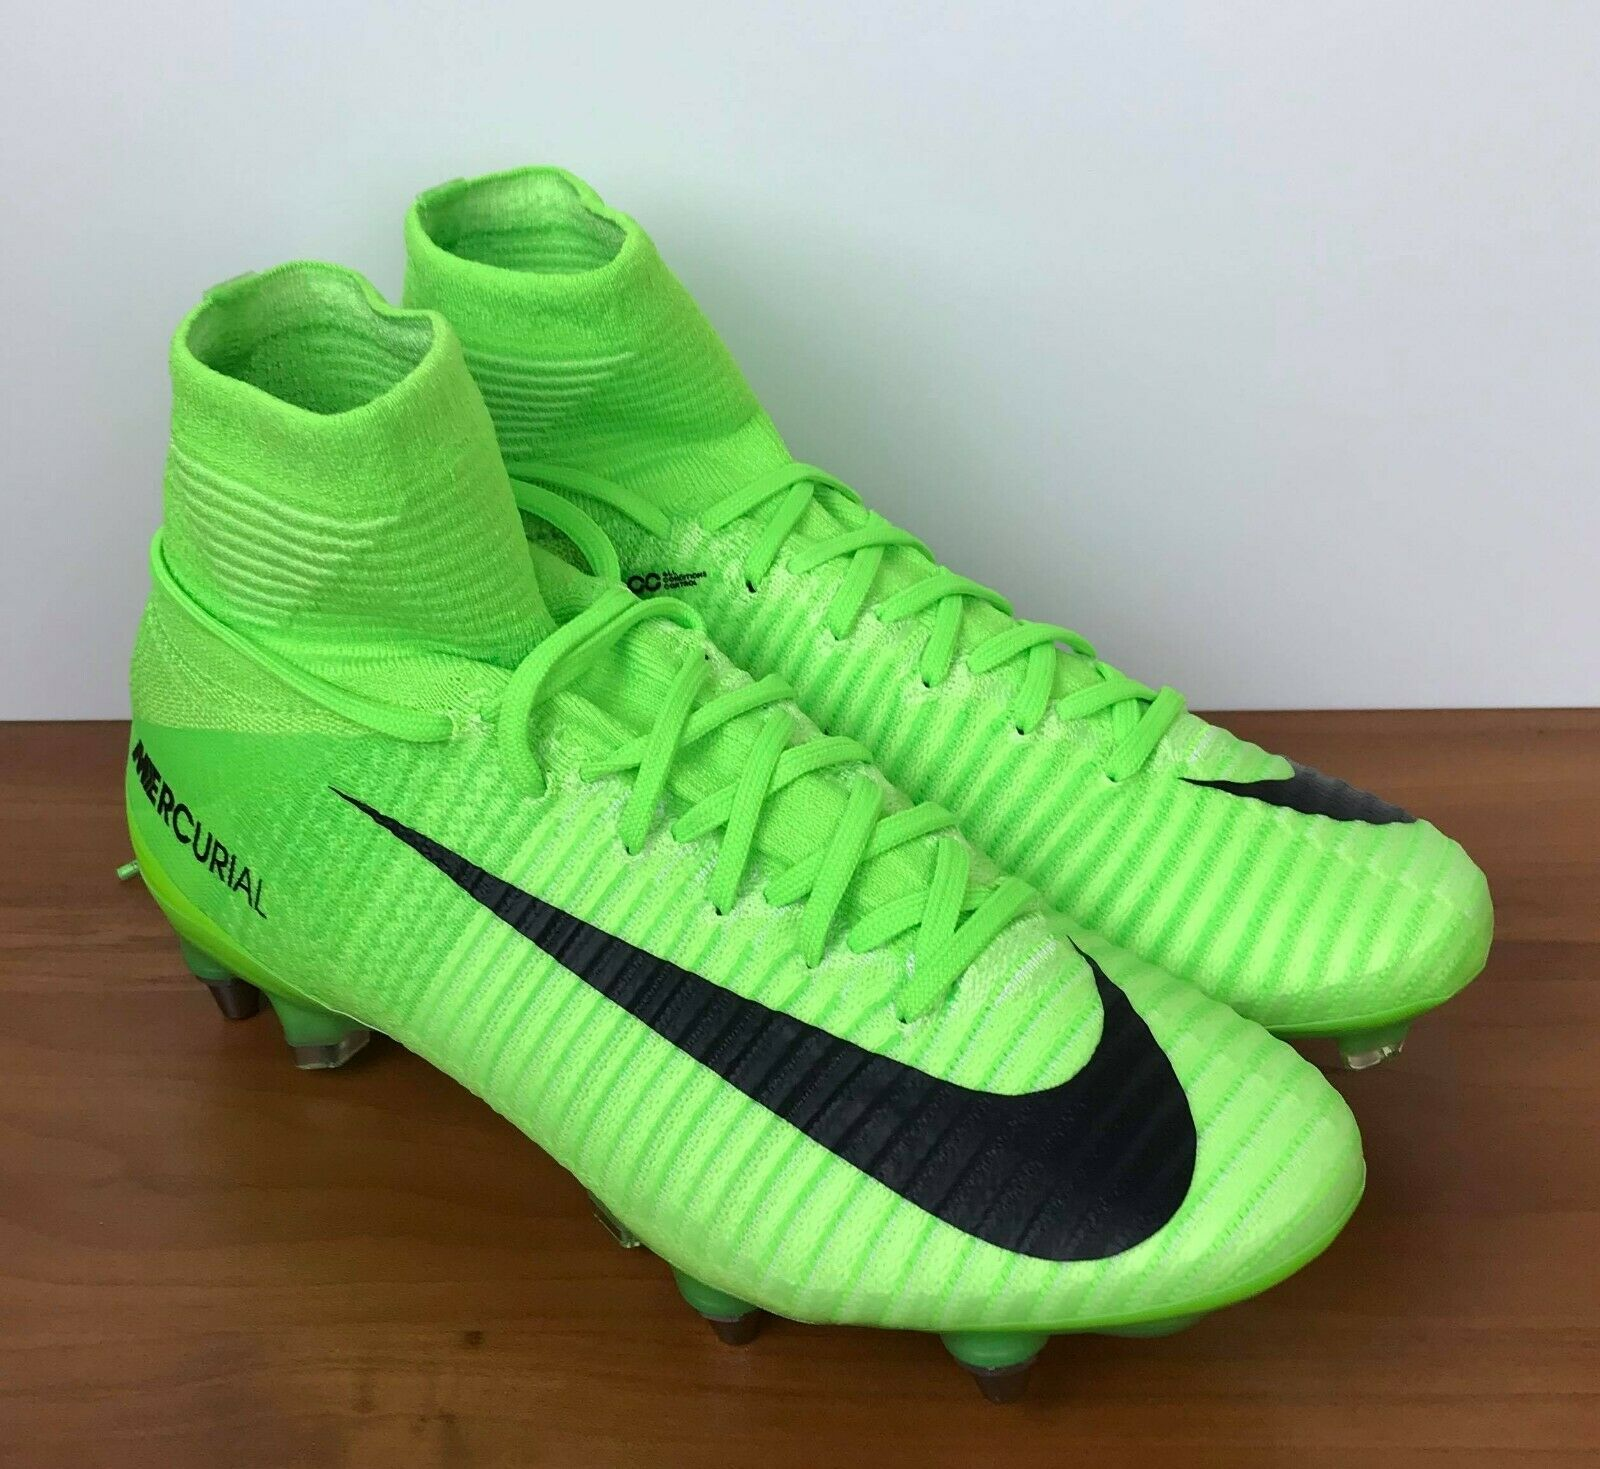 Nike Mercurial Superfly V 5 SG-Pro Green Soccer Cleats 831956-305 Men's Size 6